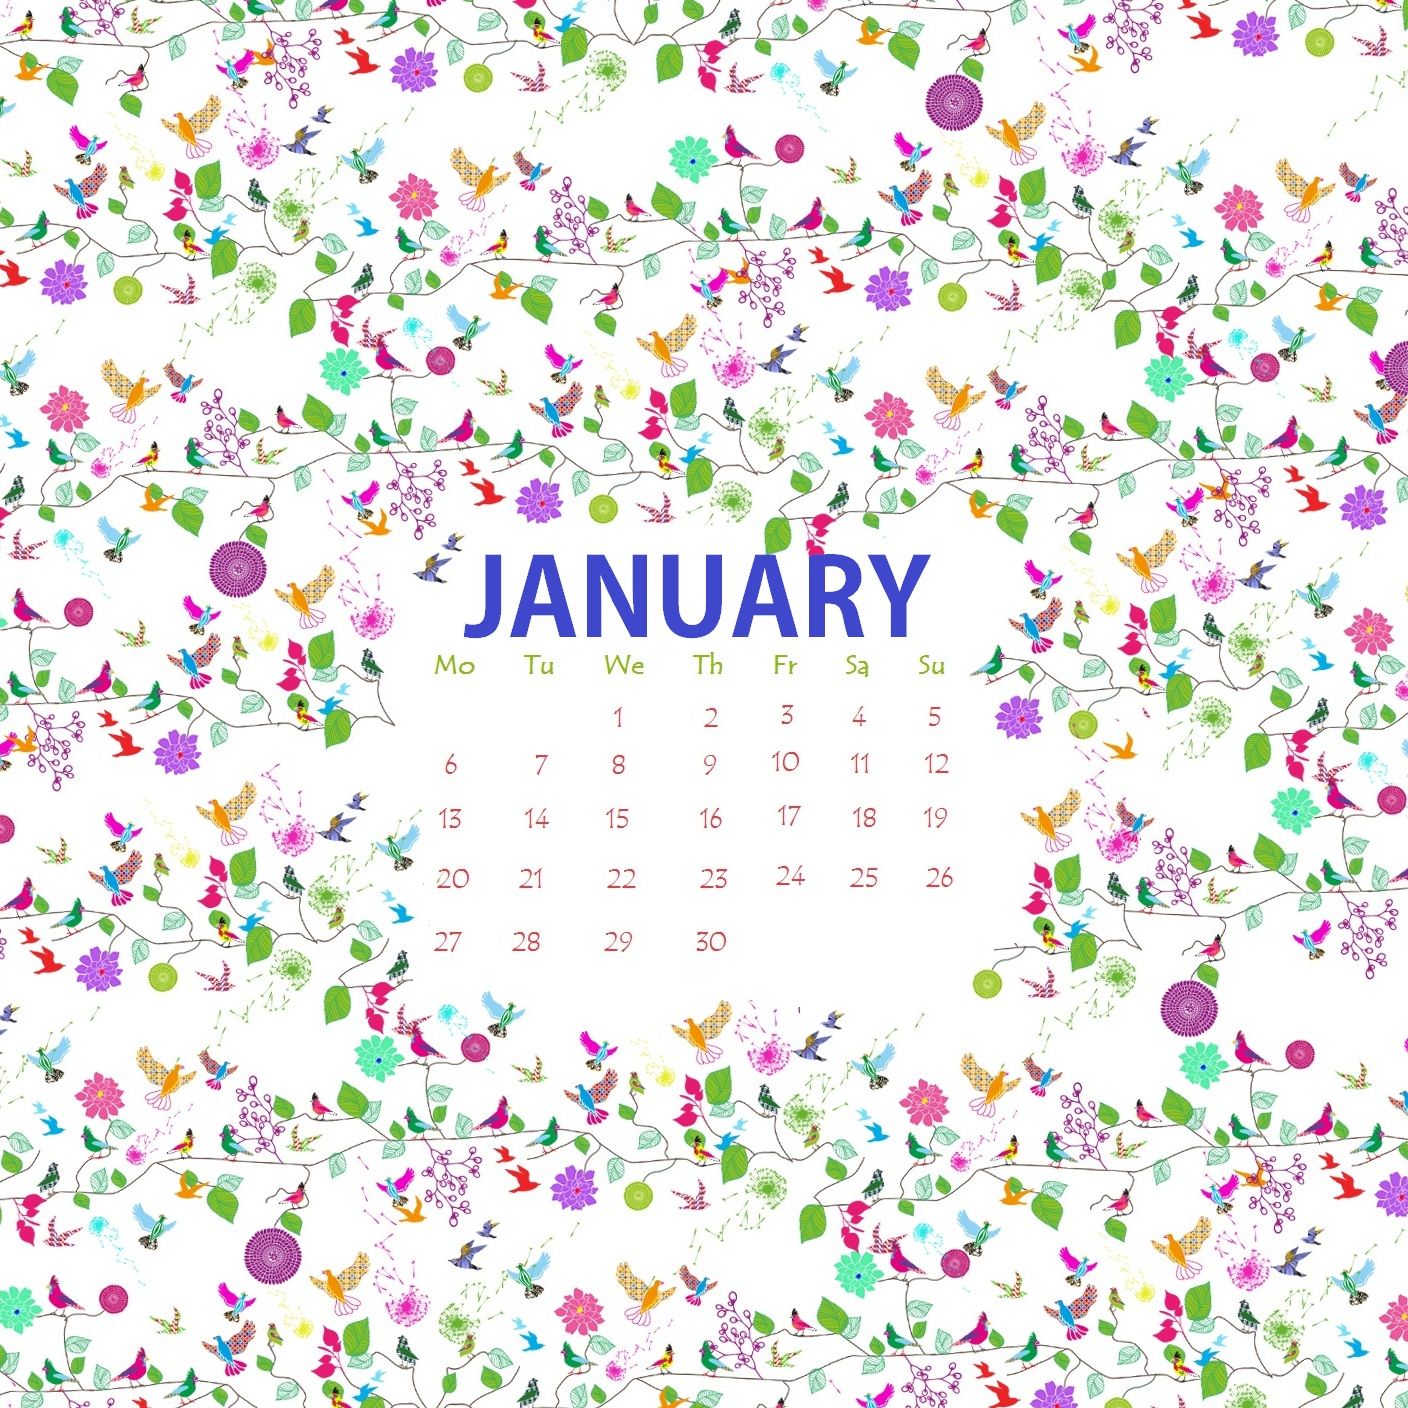 iPhone January 2020 Wallpaper Calendar Latest Calendar 1408x1408